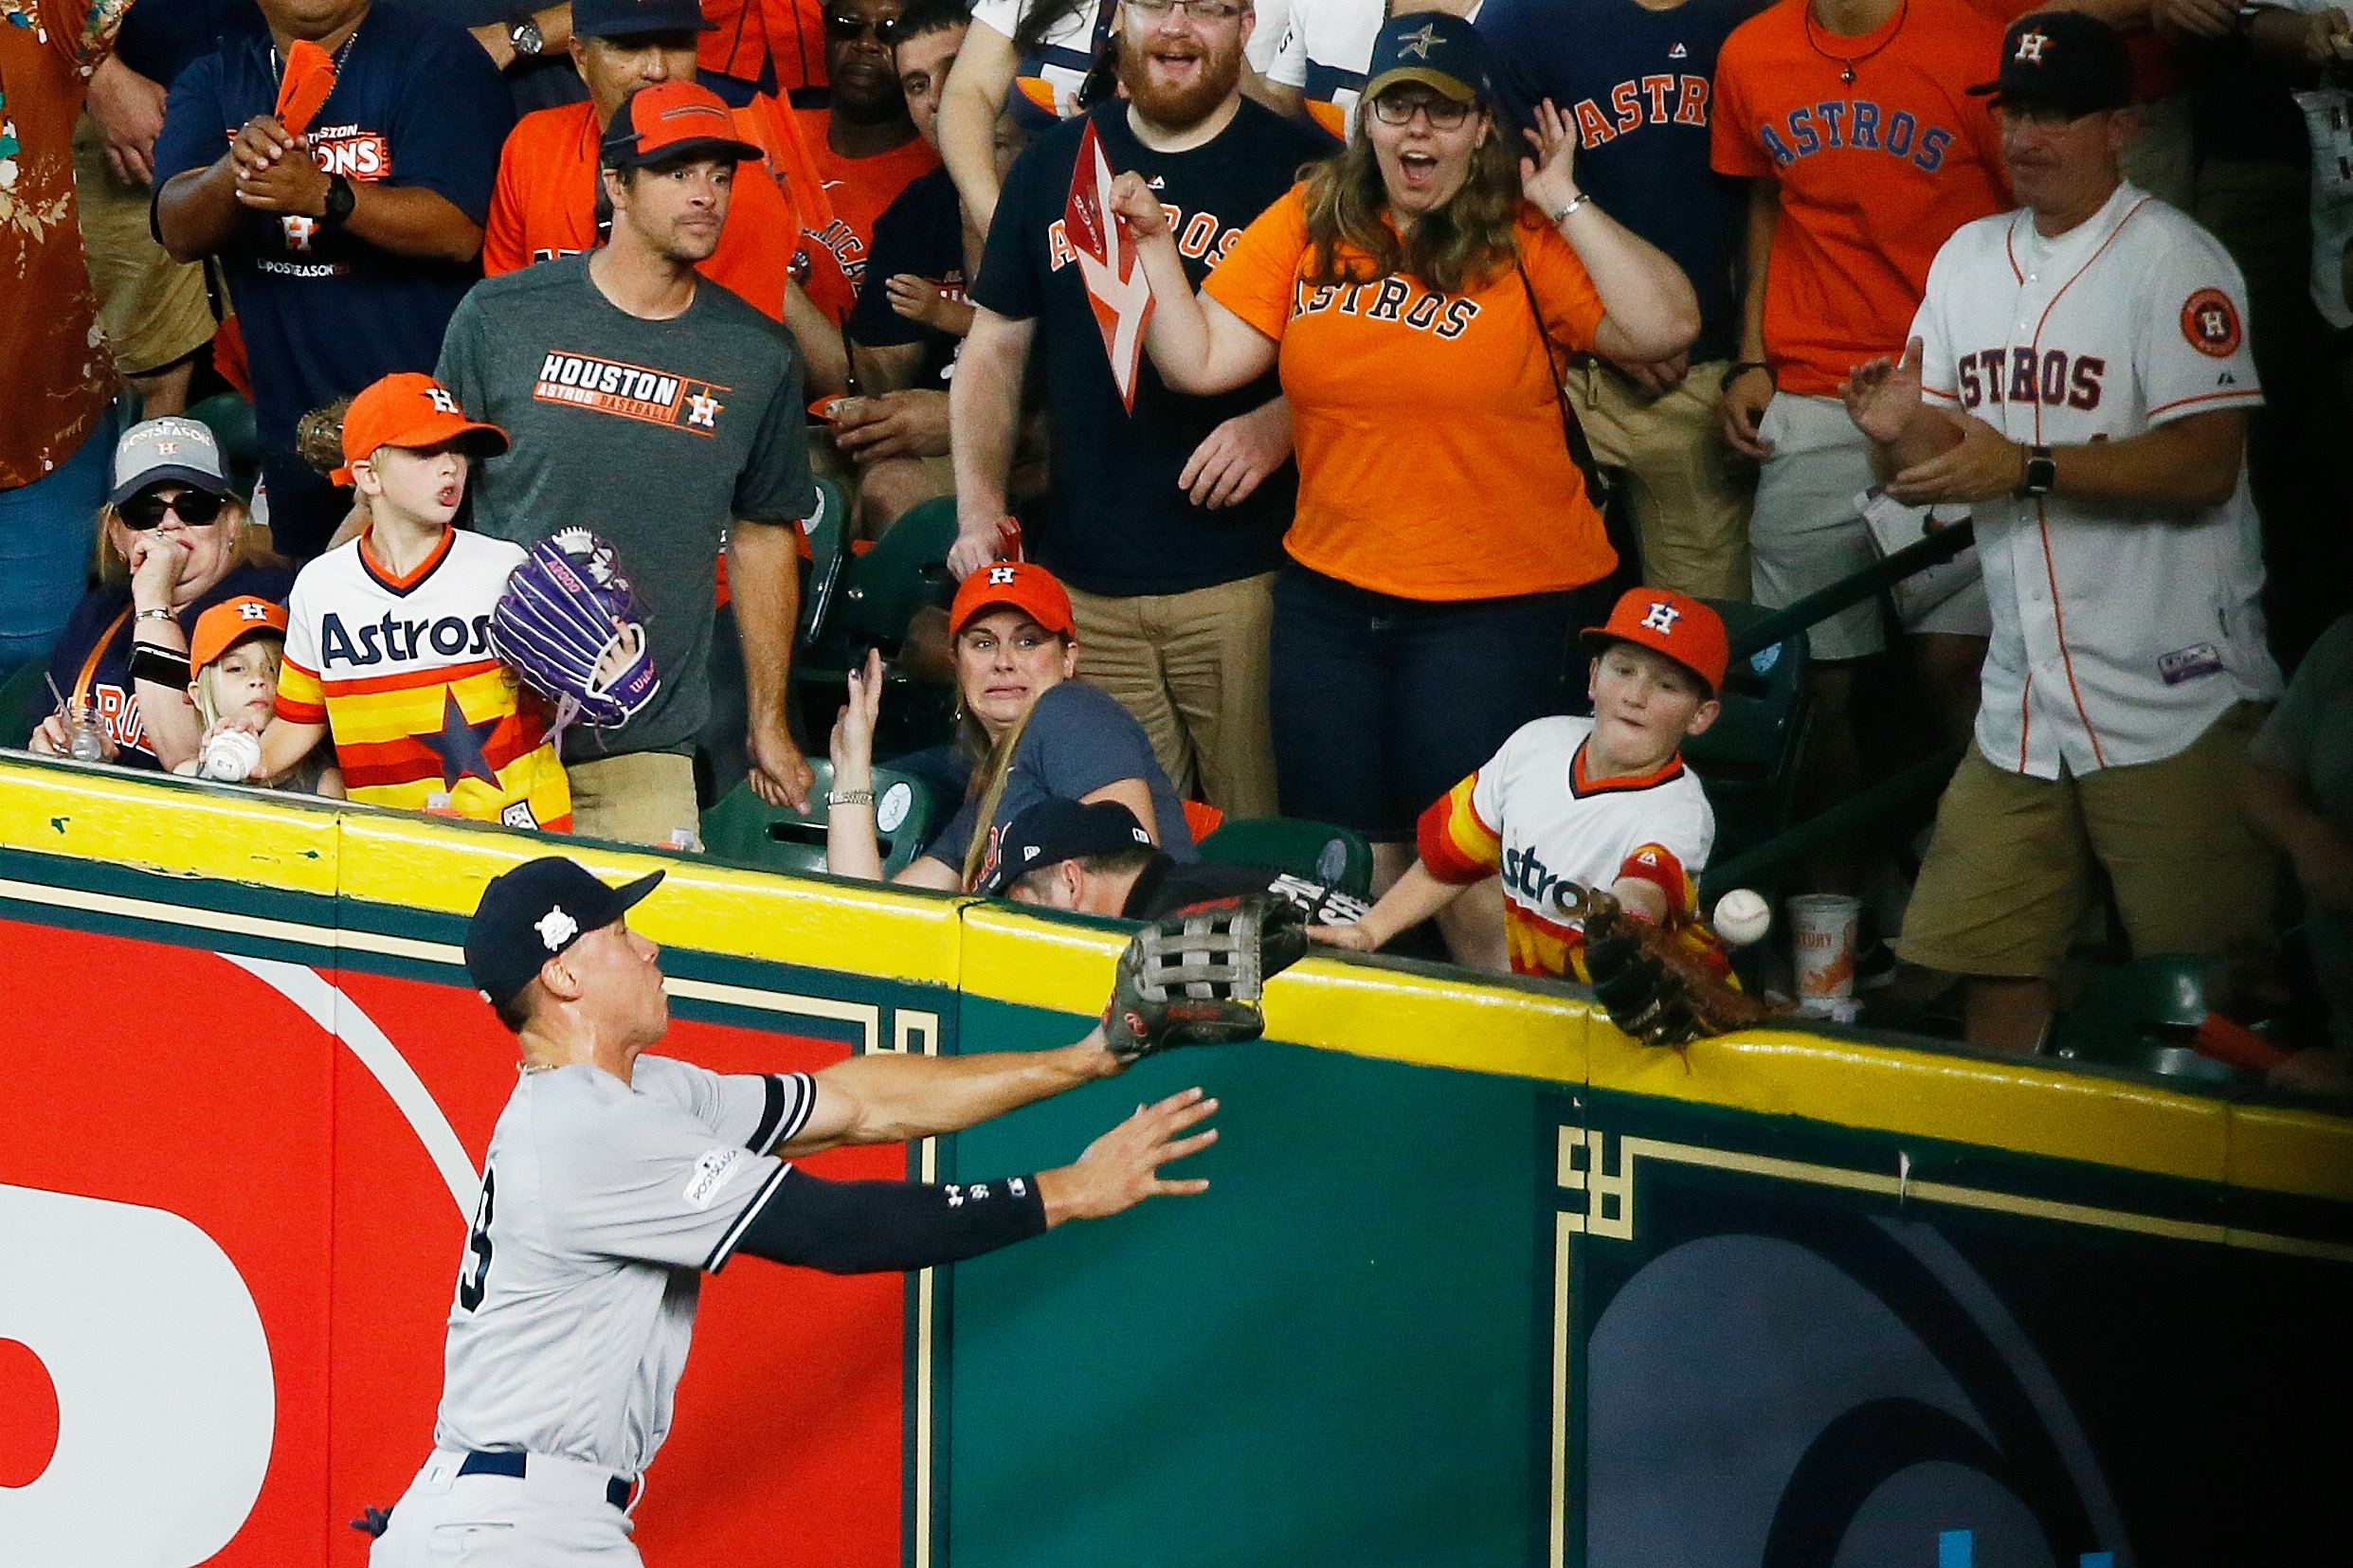 The kid who nearly caught the Astros homer had an angel in the outfield: His brother